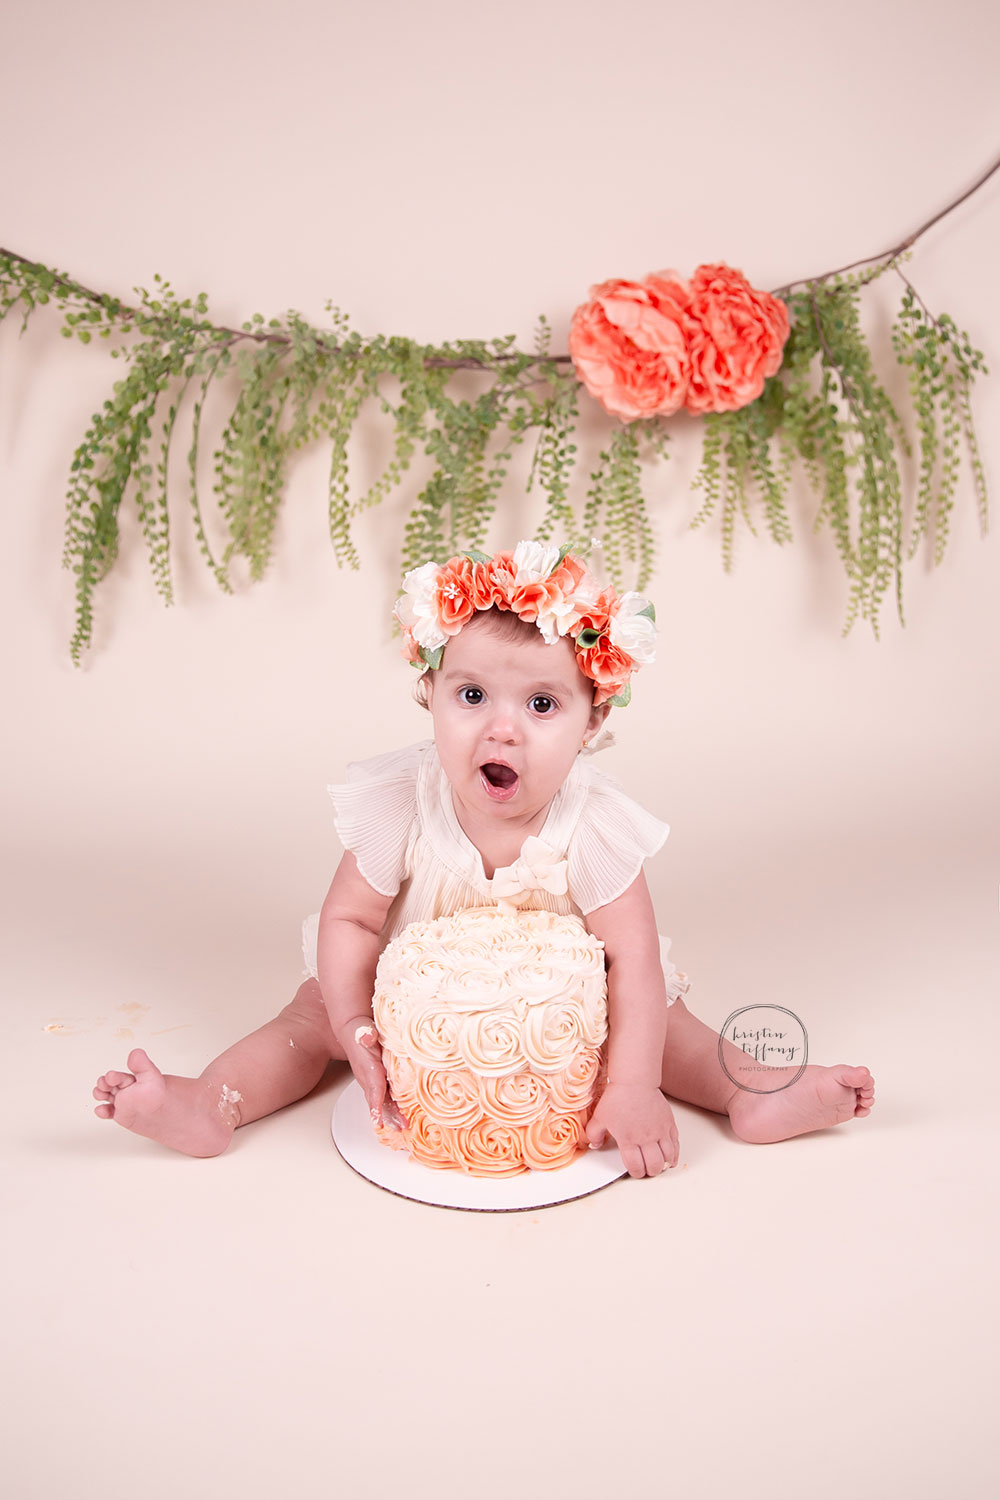 a photo of a baby girl hugging her birthday cake